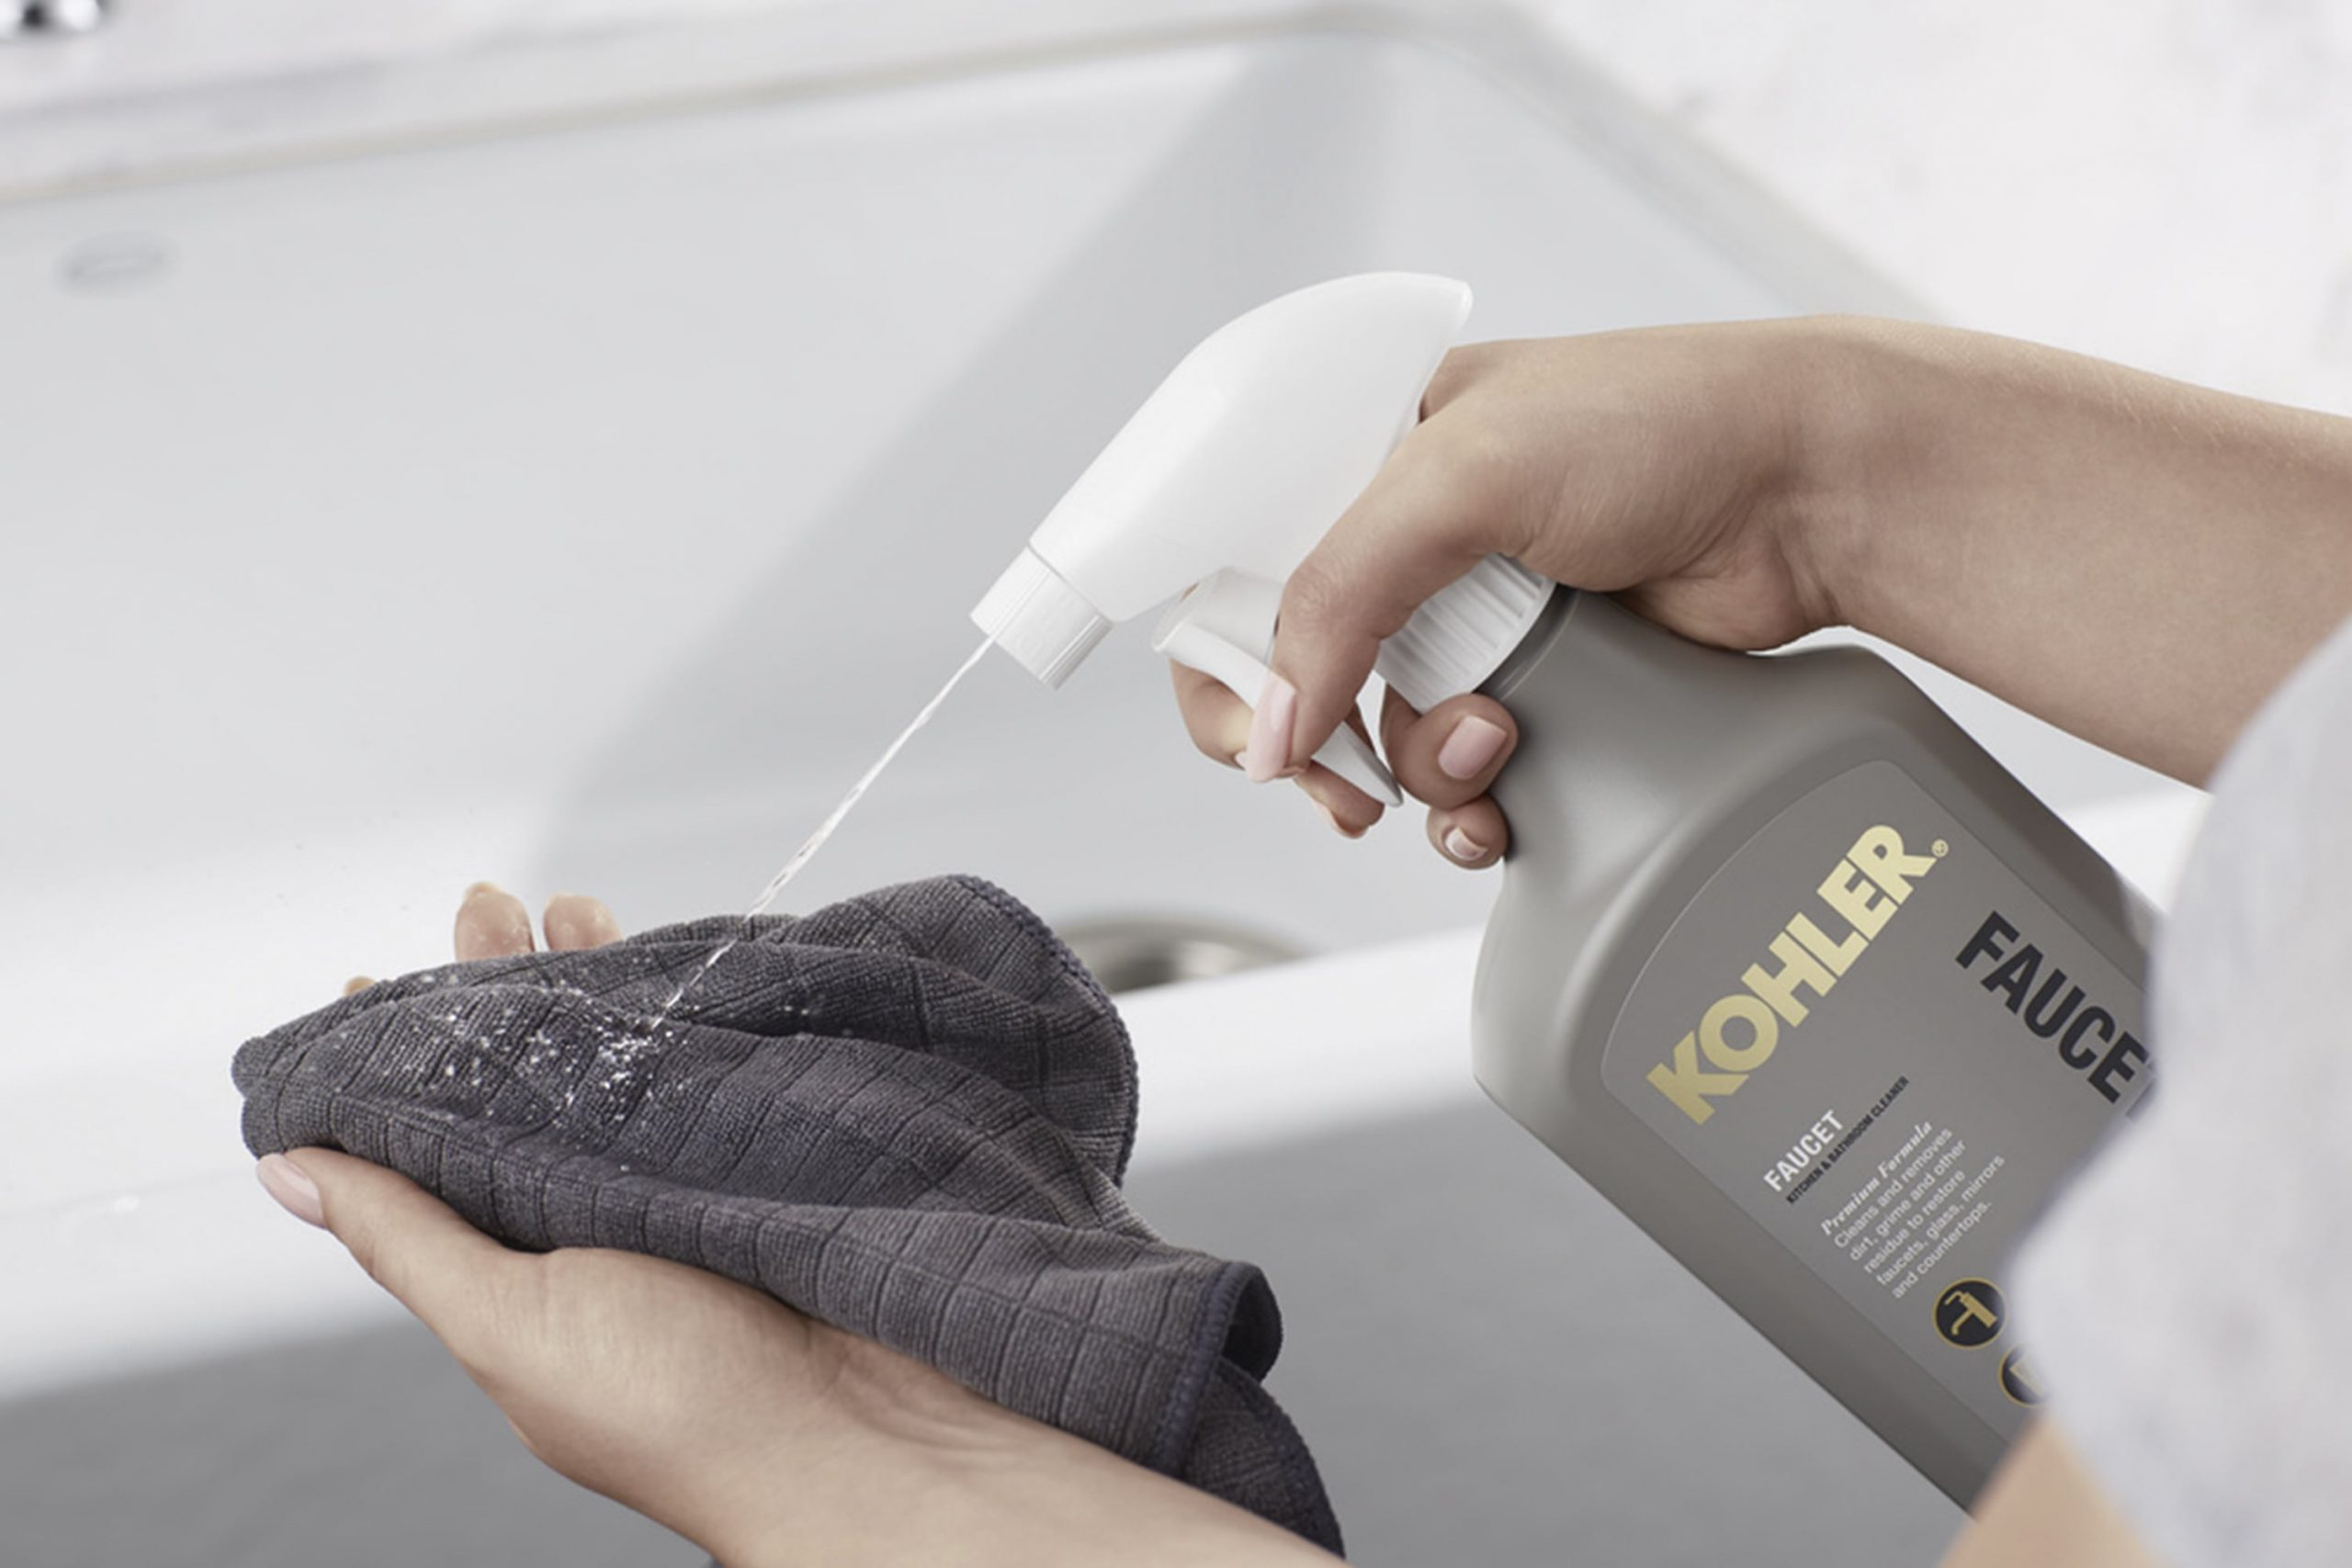 KOHLER Cleaner Product with cloth